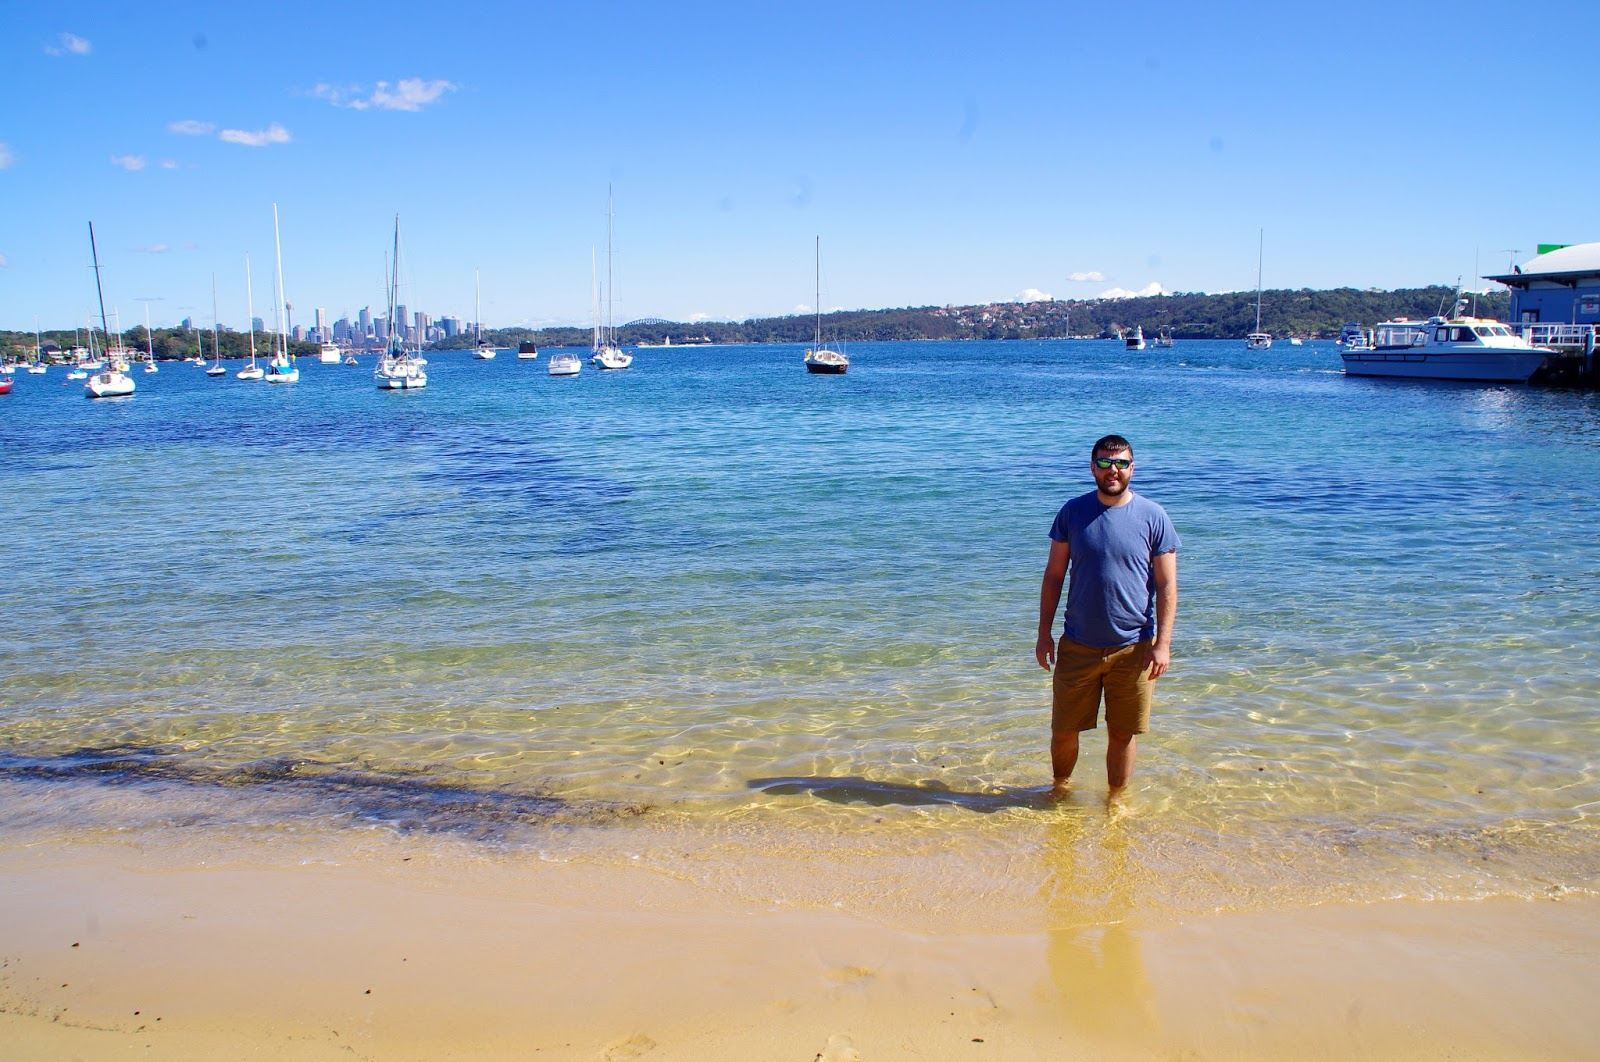 Dan paddling in Watsons Bay